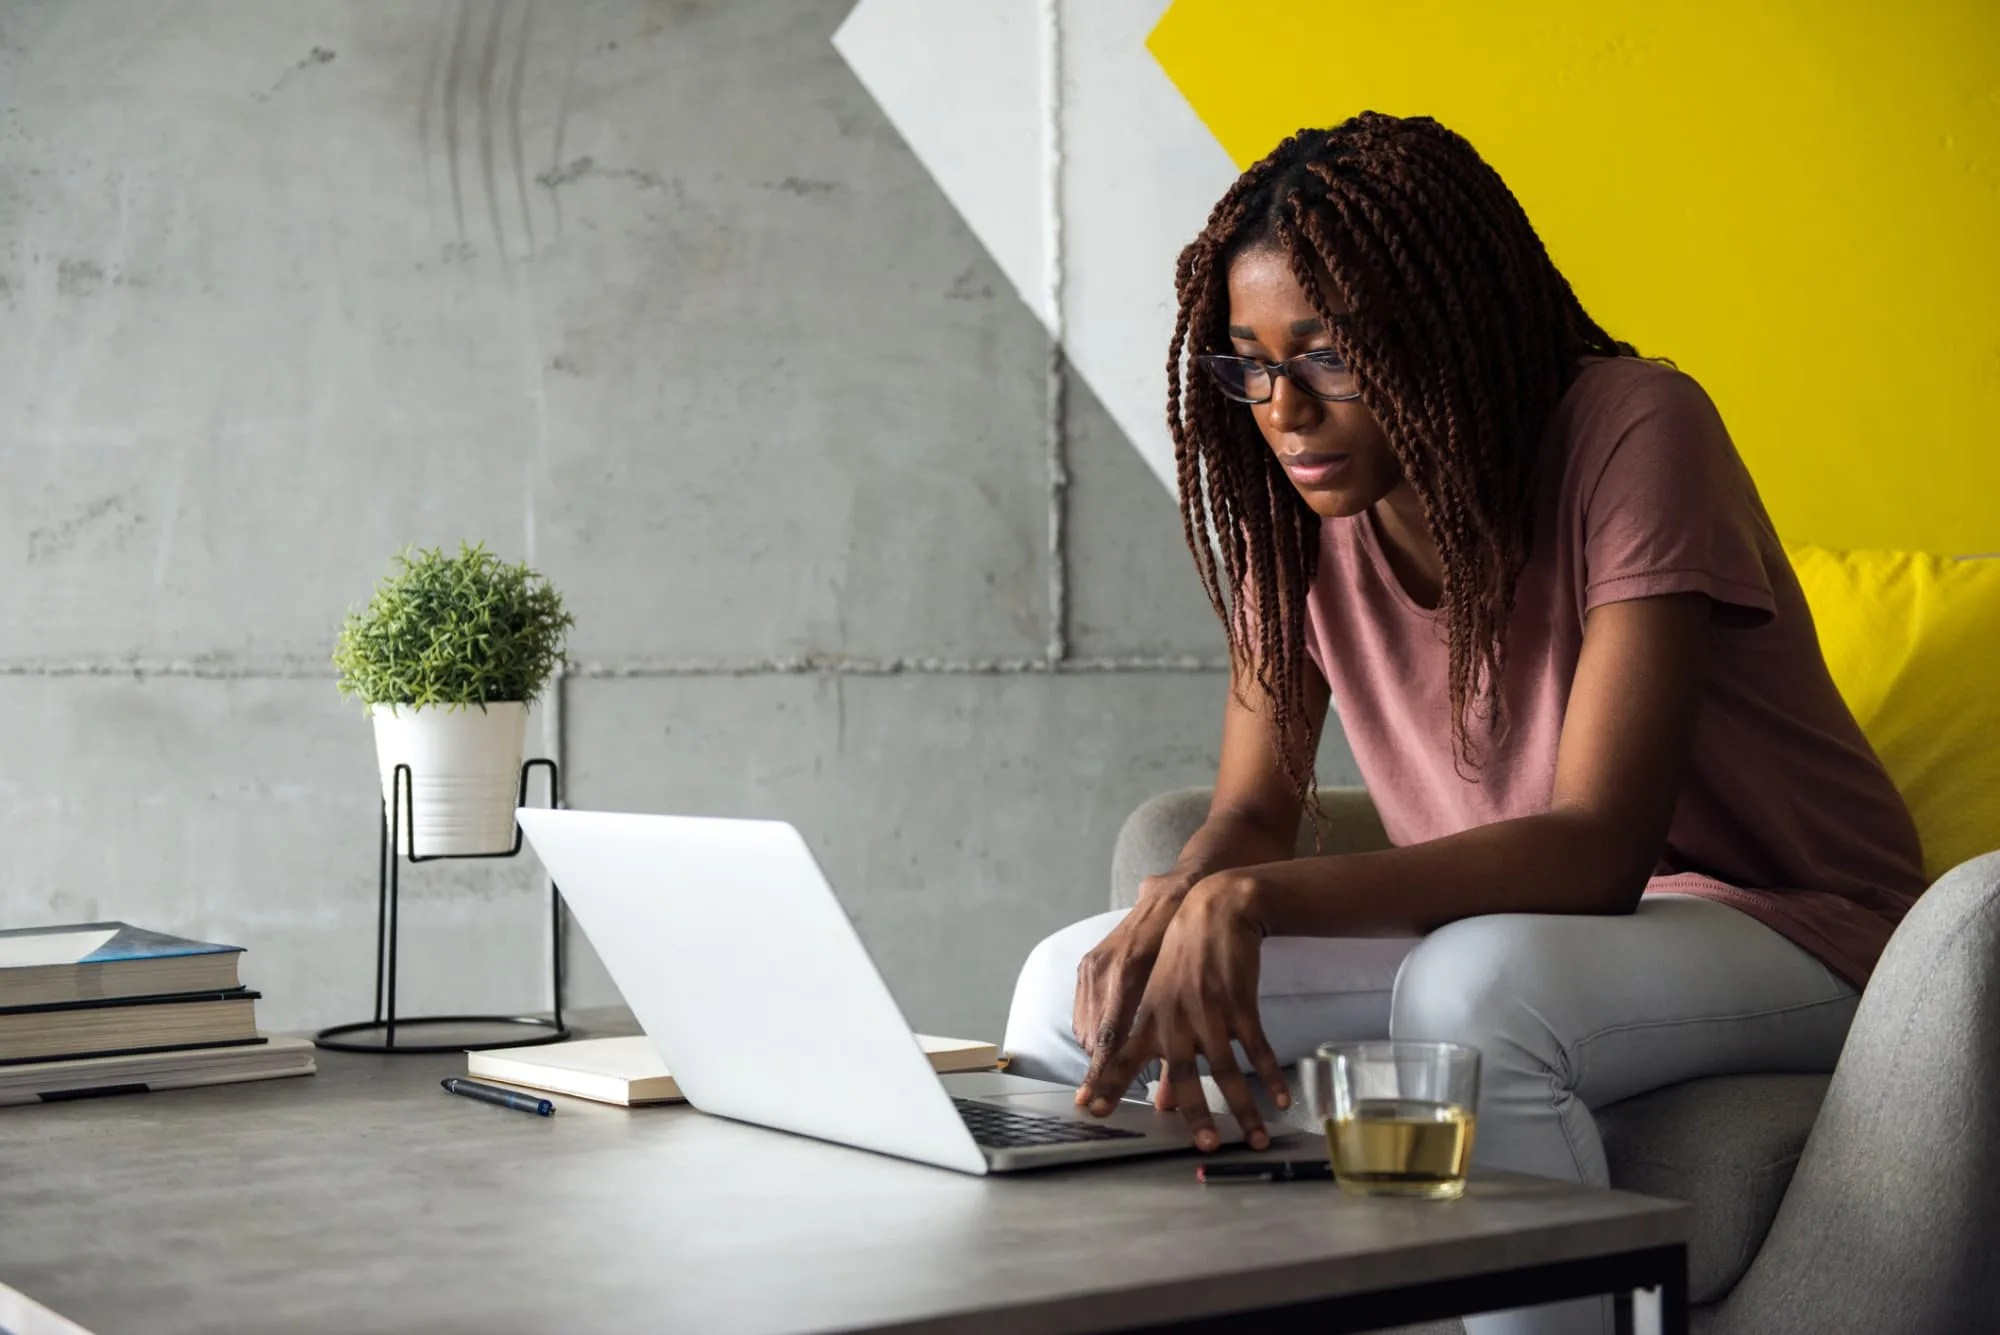 12 Best Job Search Sites Tailored for Your Career Goals